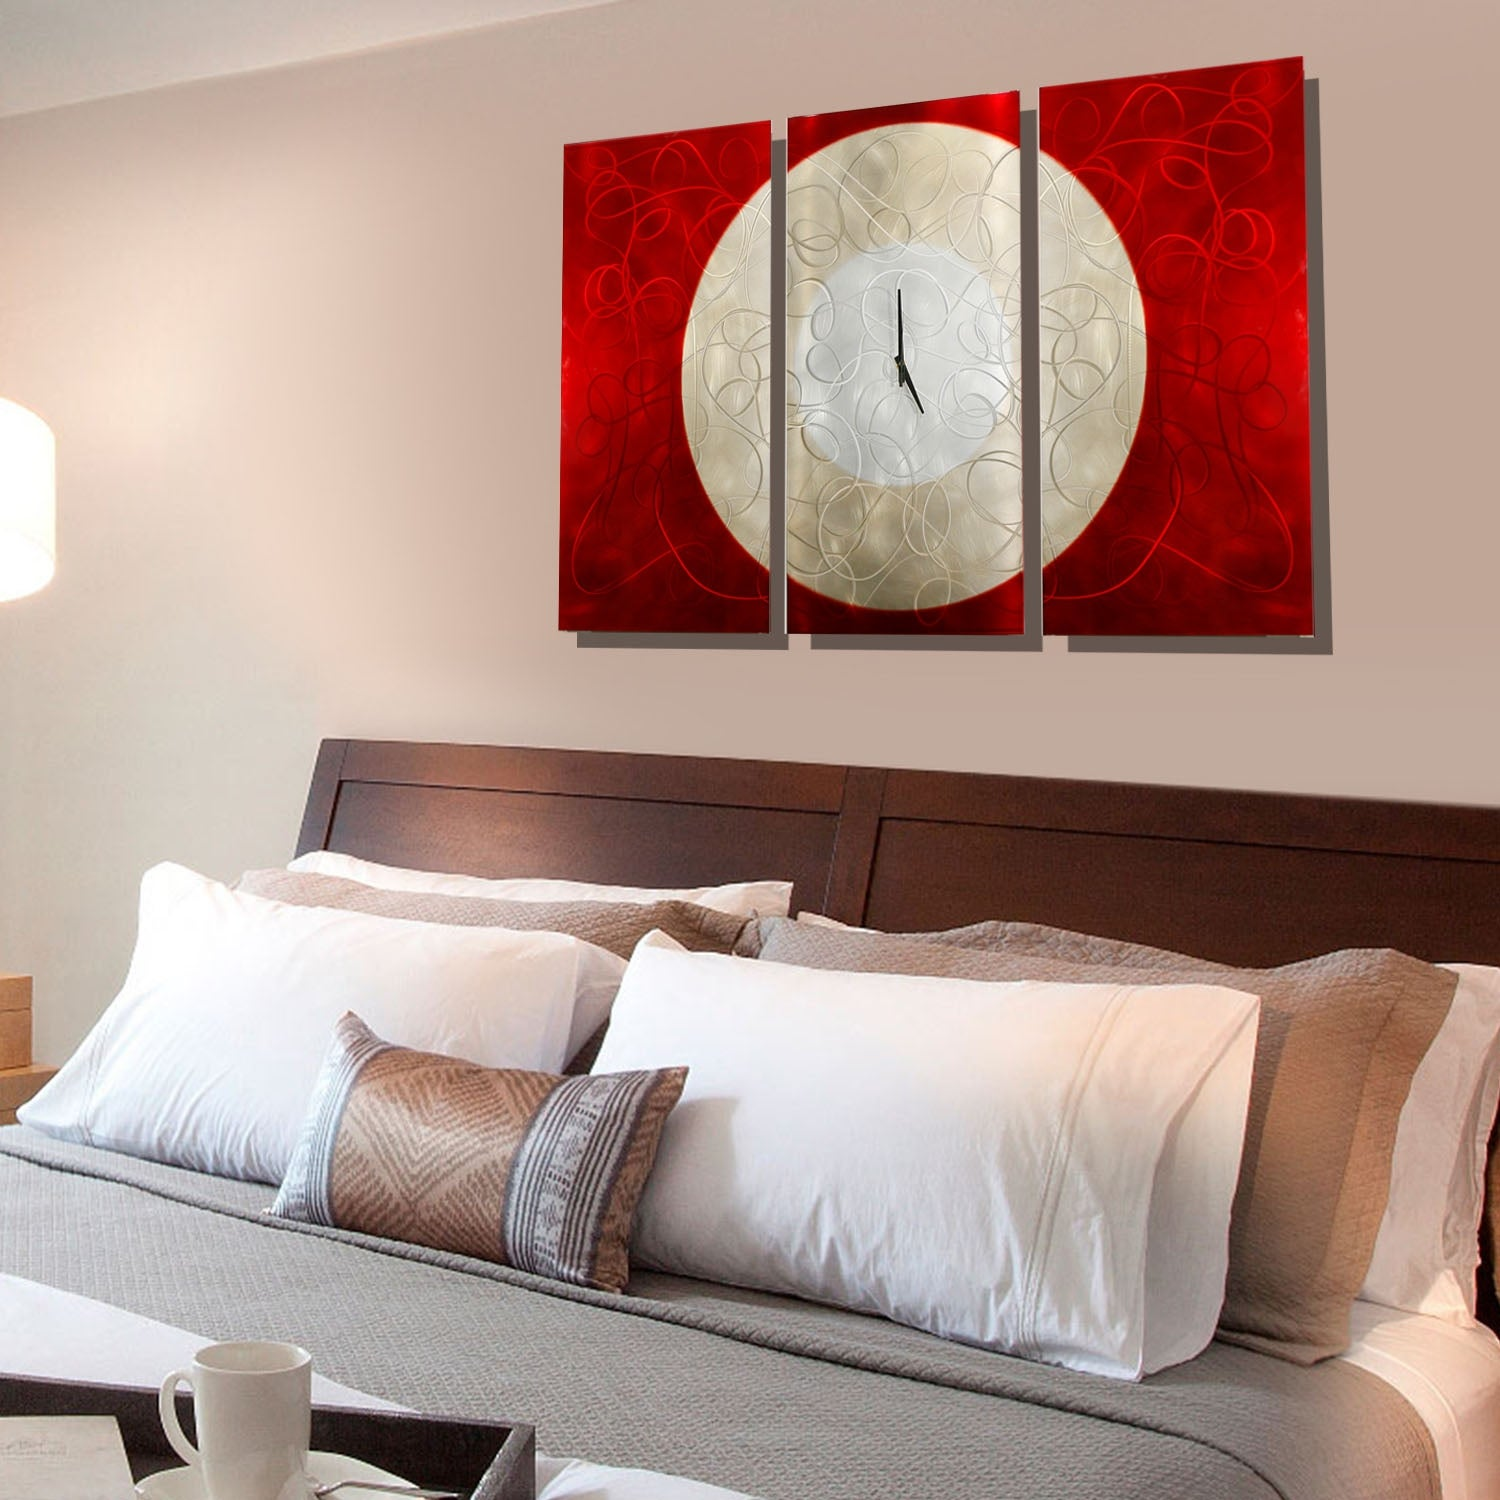 Statements2000 Red Silver 38 Inch Metal Panel Wall Clock Burning Moon N A Free Shipping Today 25425447